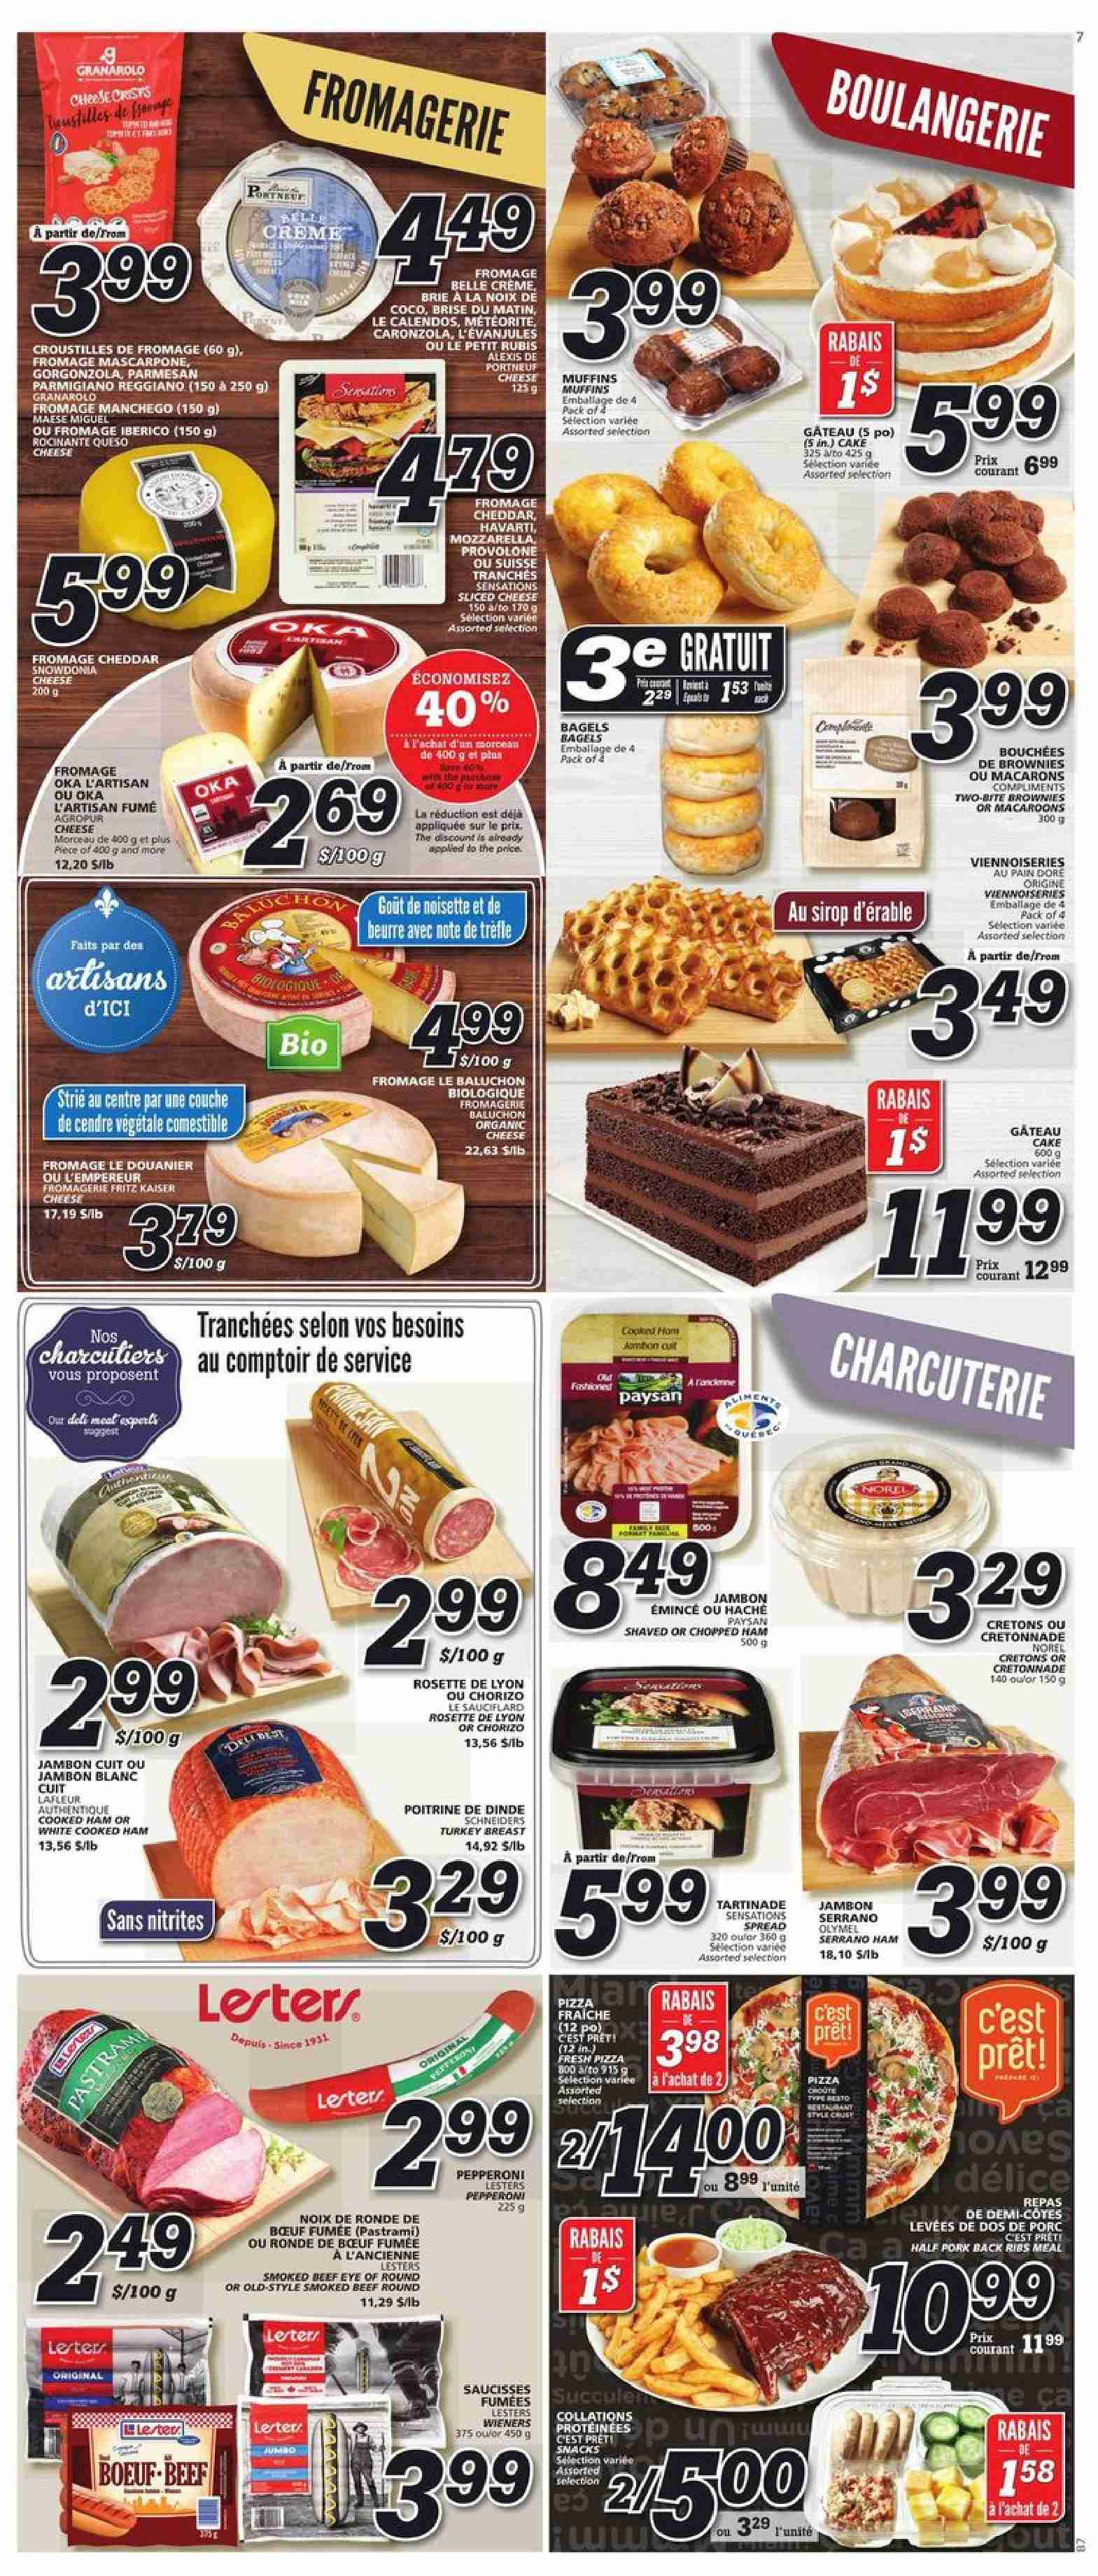 IGA Flyer  - February 28, 2019 - March 06, 2019. Page 5.